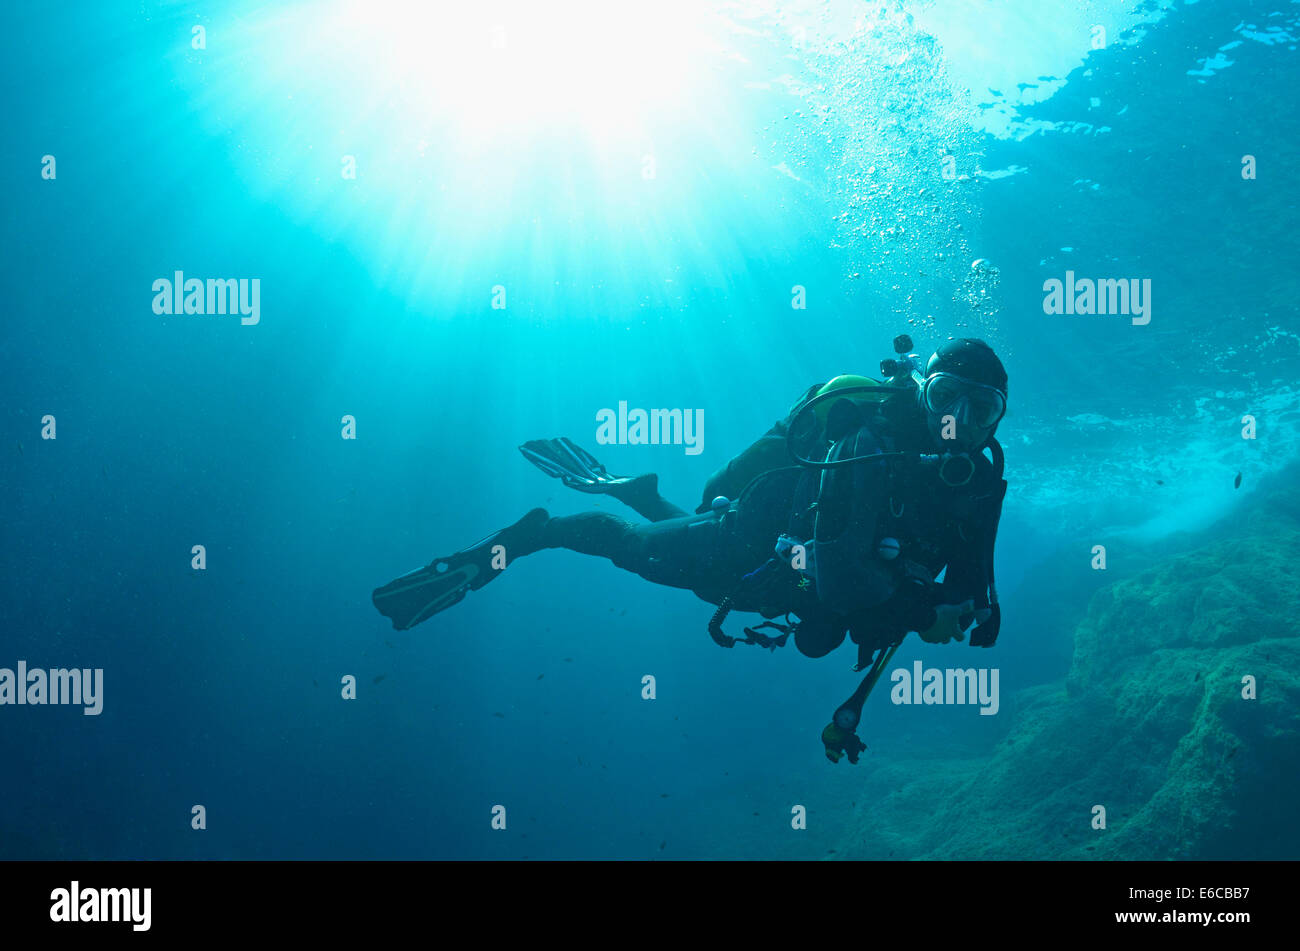 Sunbeams and scuba diver swimming underwater, Europe - Stock Image